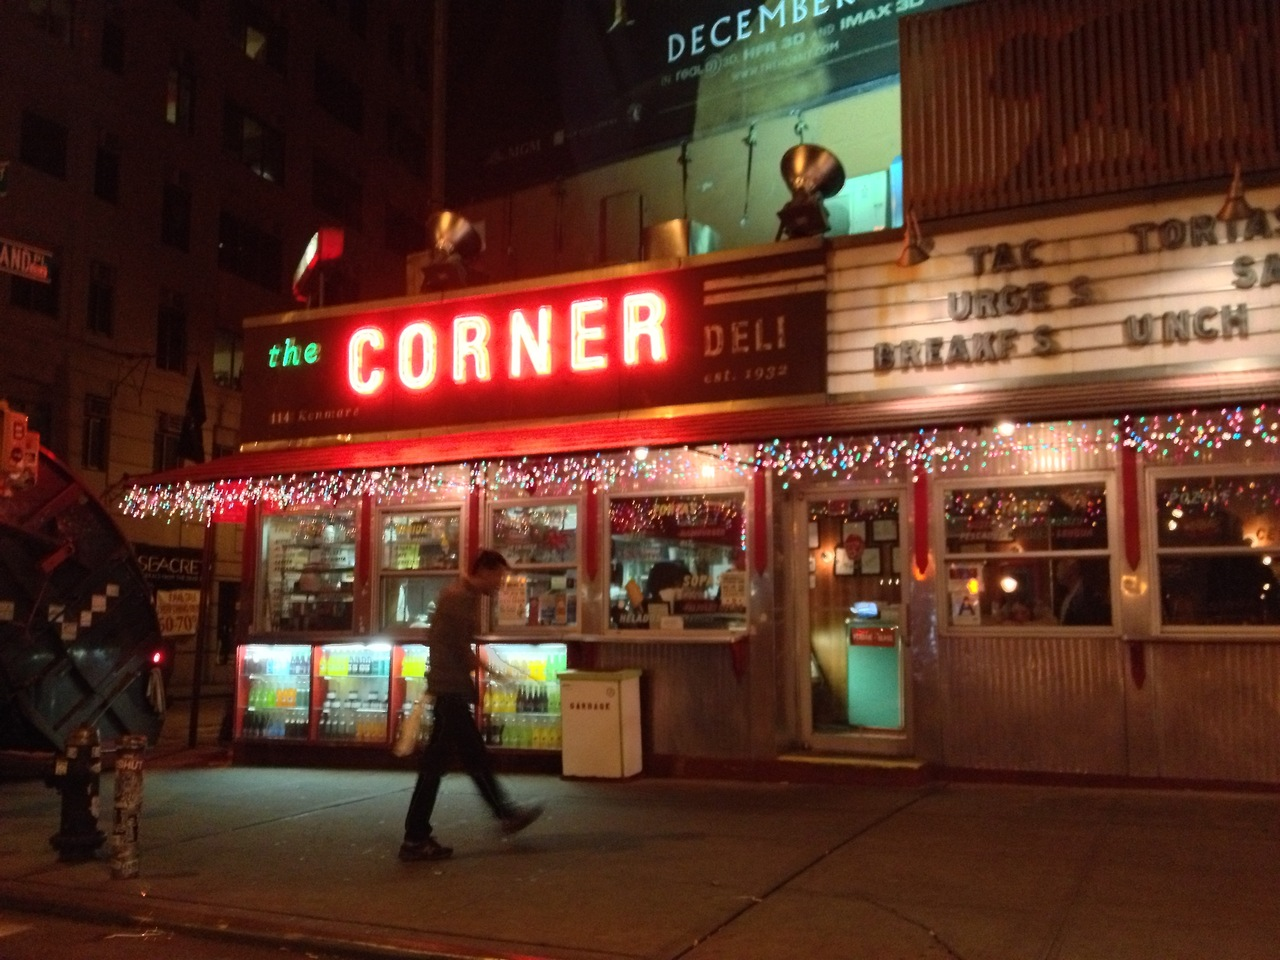 The Corner; Love Tacos - #peppersearcing #pepper #tacos #nyc #manwalking #neosign